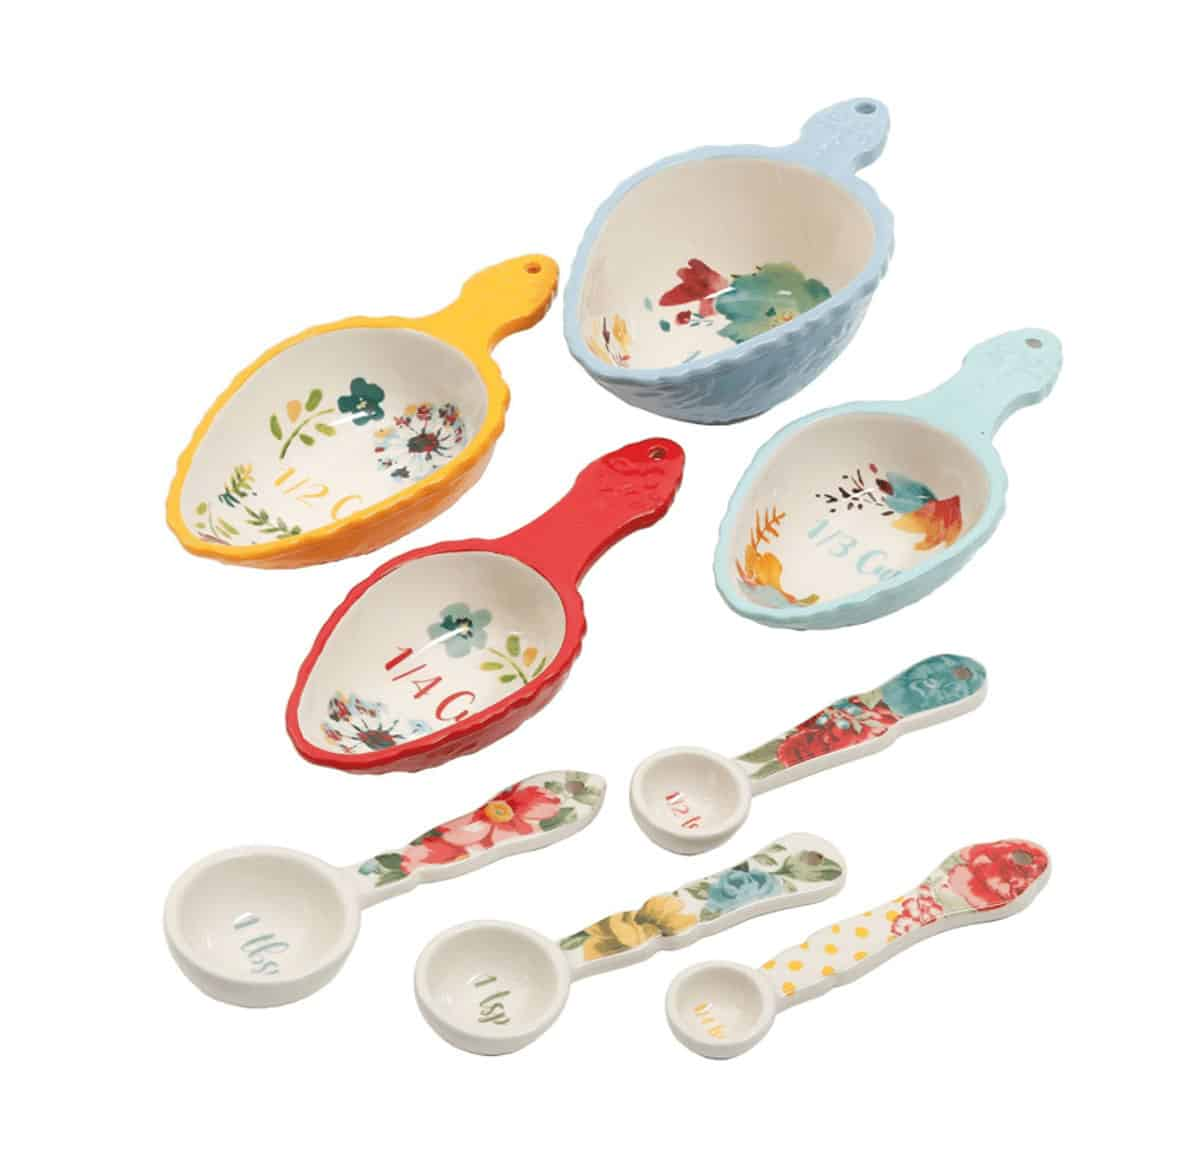 Pretty floral measuring spoon set.